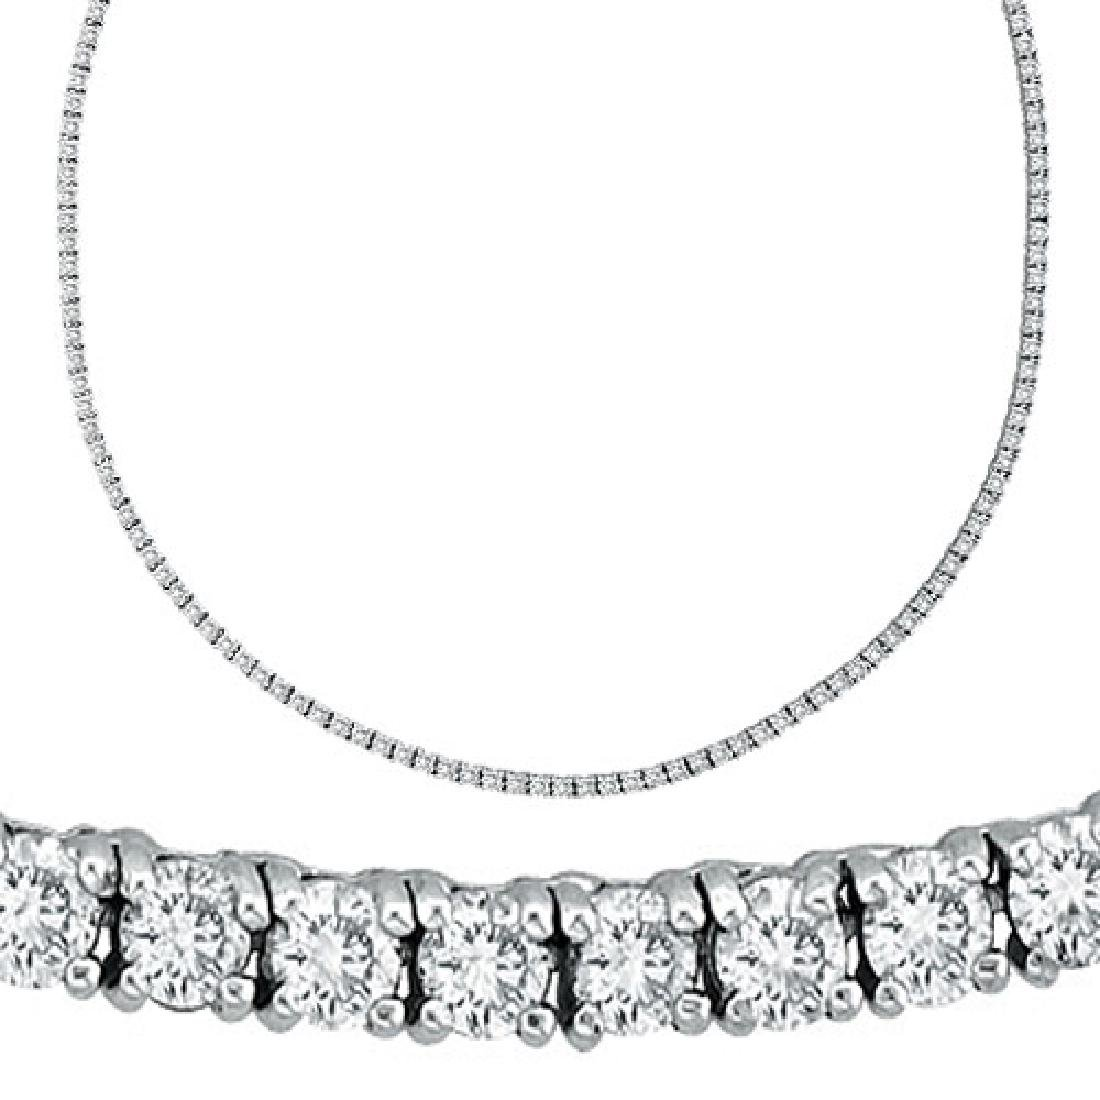 50 CTW Certified SI Diamond Necklace 14K White Gold